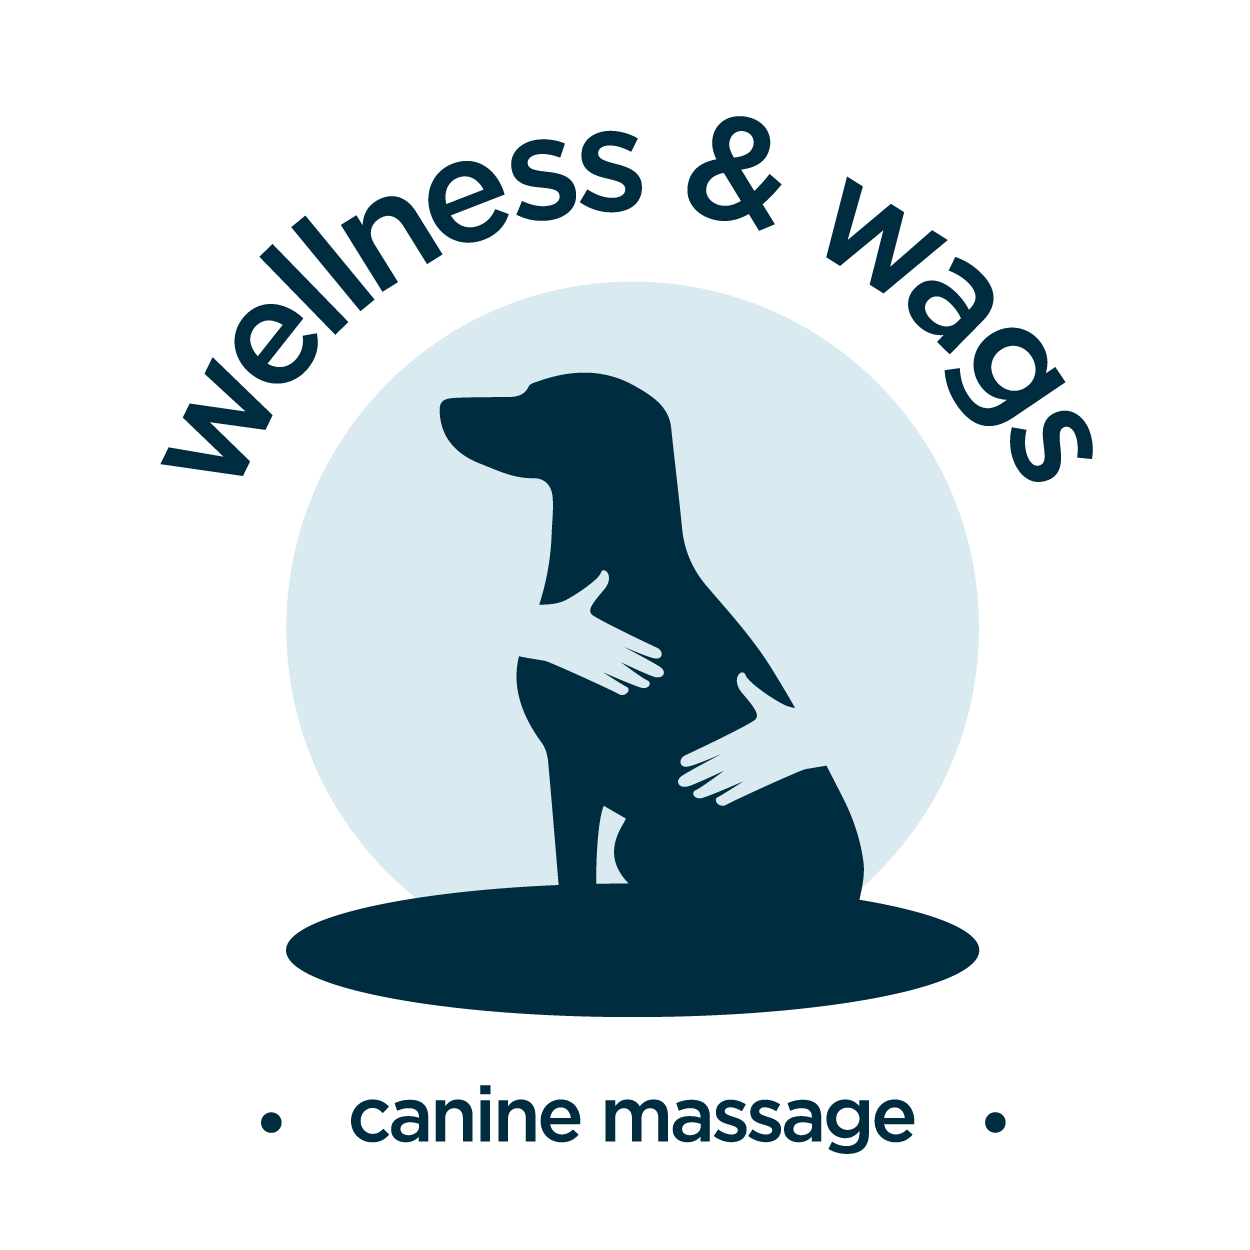 wellness & wags